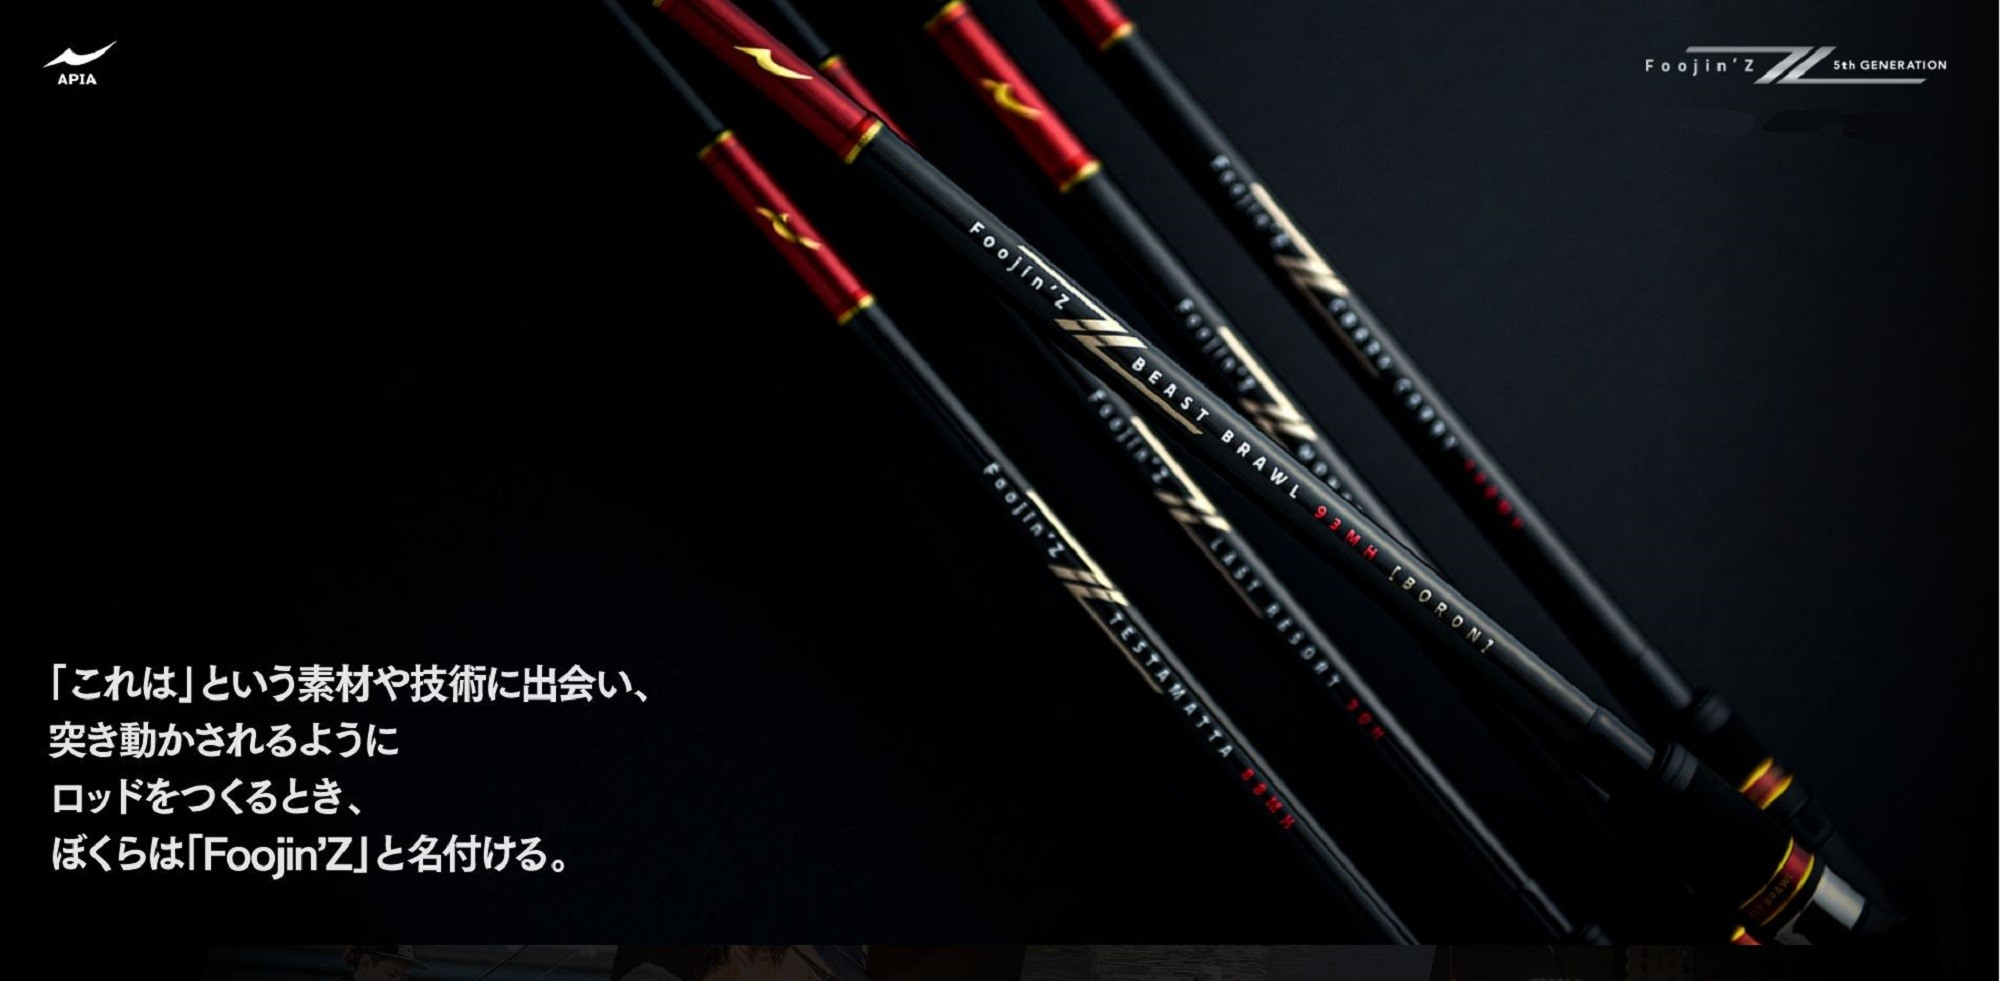 Apia Rod Spinning Foojin'Z Natural Seven 77MH (1983)